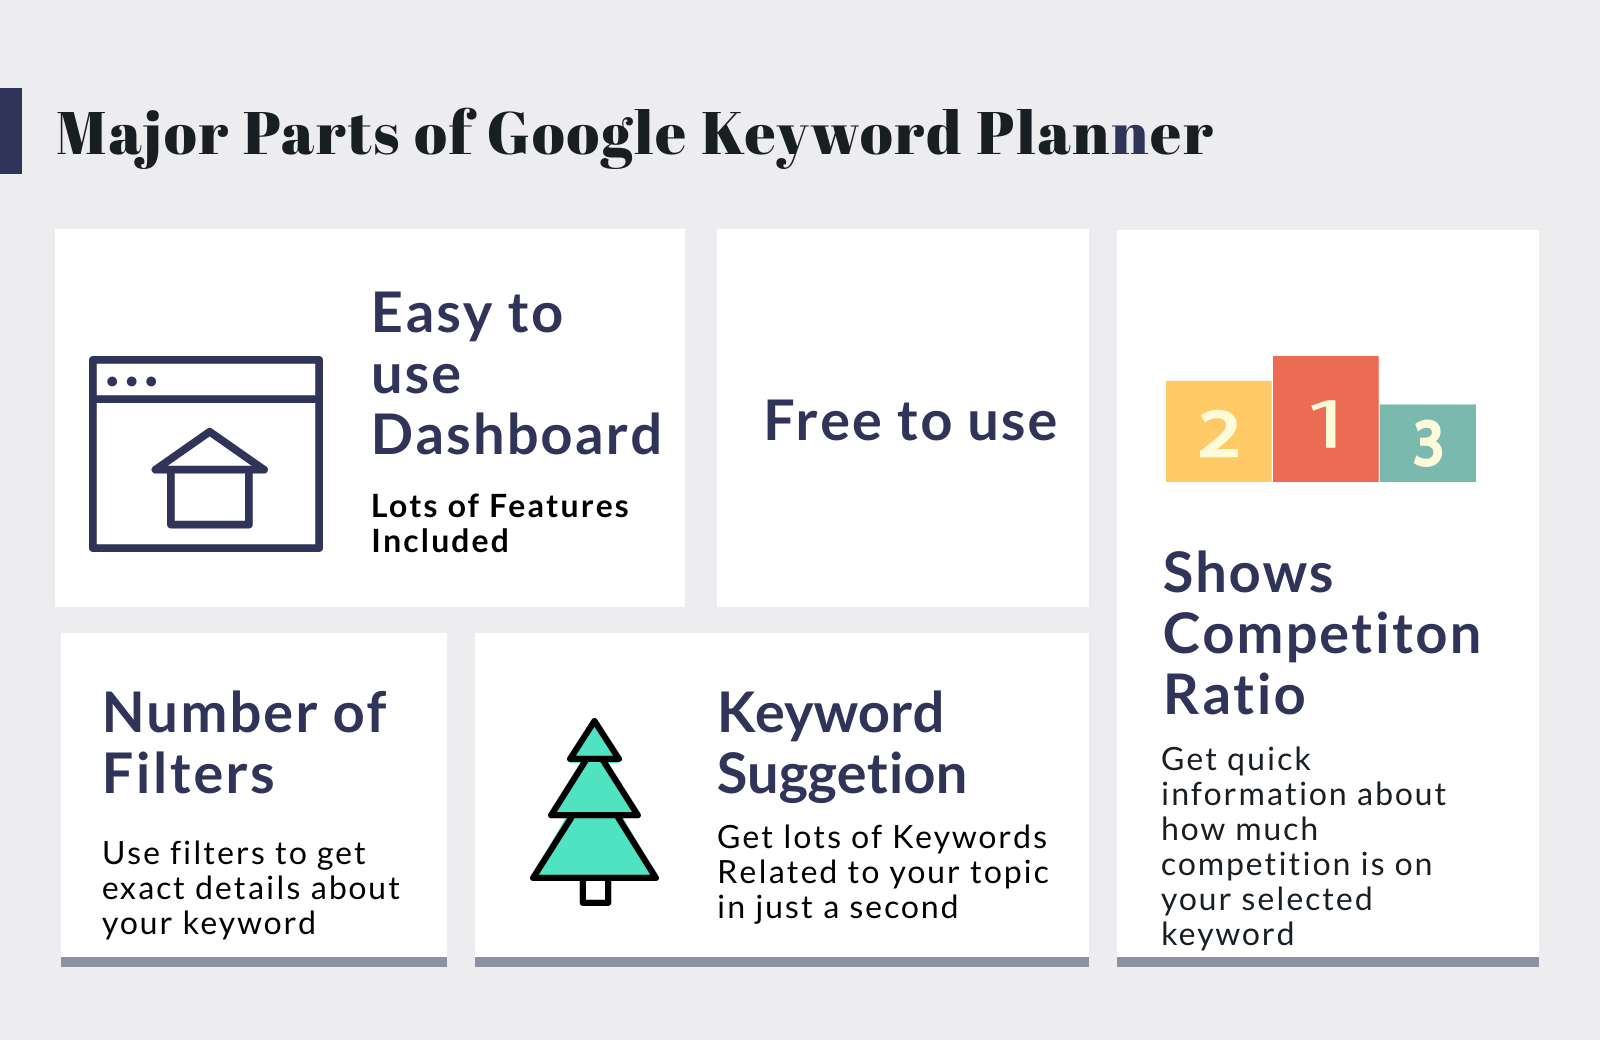 Major-Parts-of-Google-Keyword-Planner